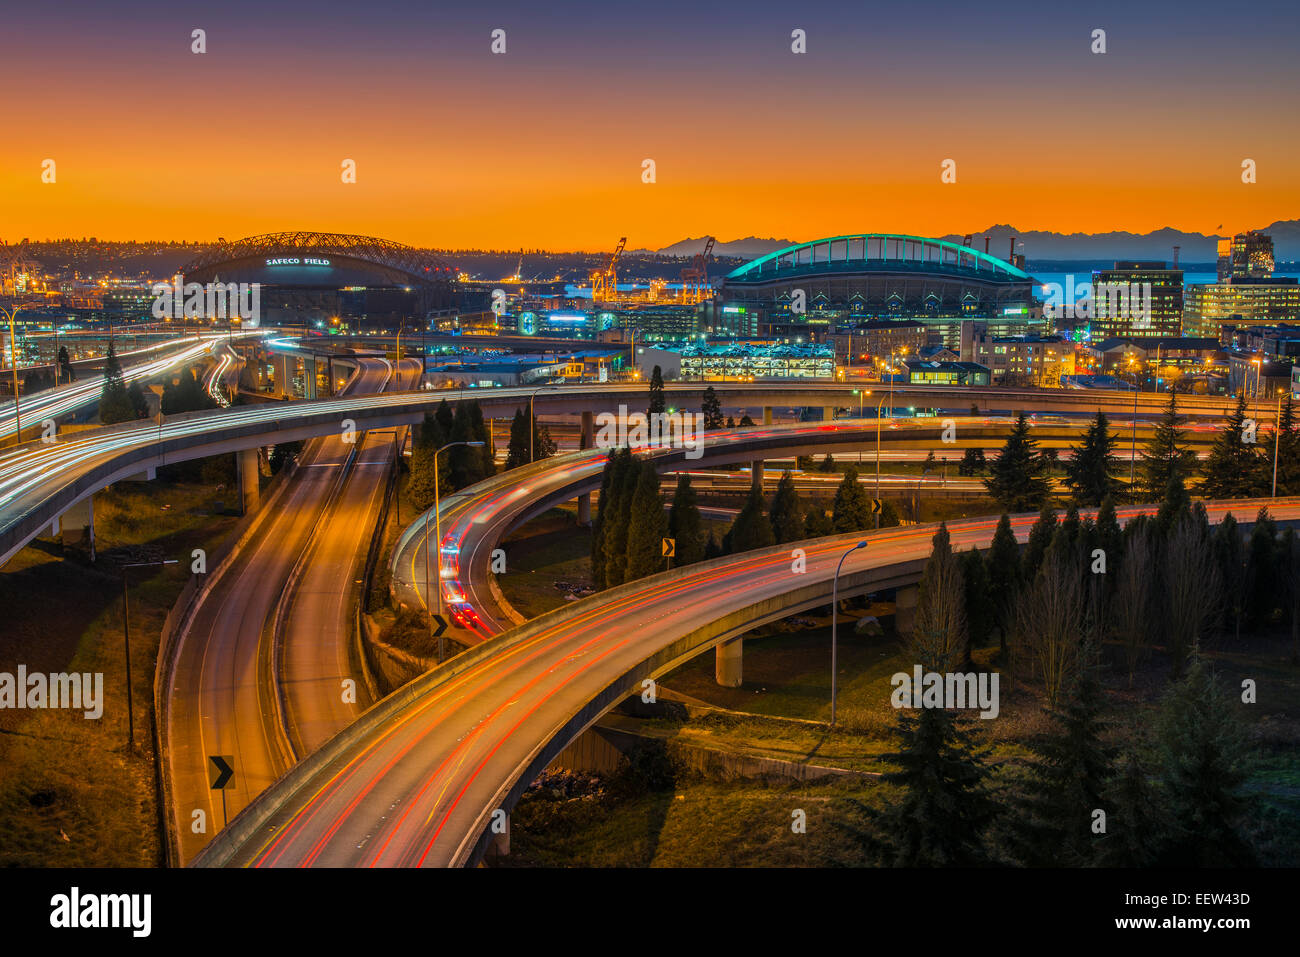 Interscambio superstrada e CenturyLink Field Stadium sotto tramonto spettacolare, Seattle, Washington, Stati Uniti Immagini Stock